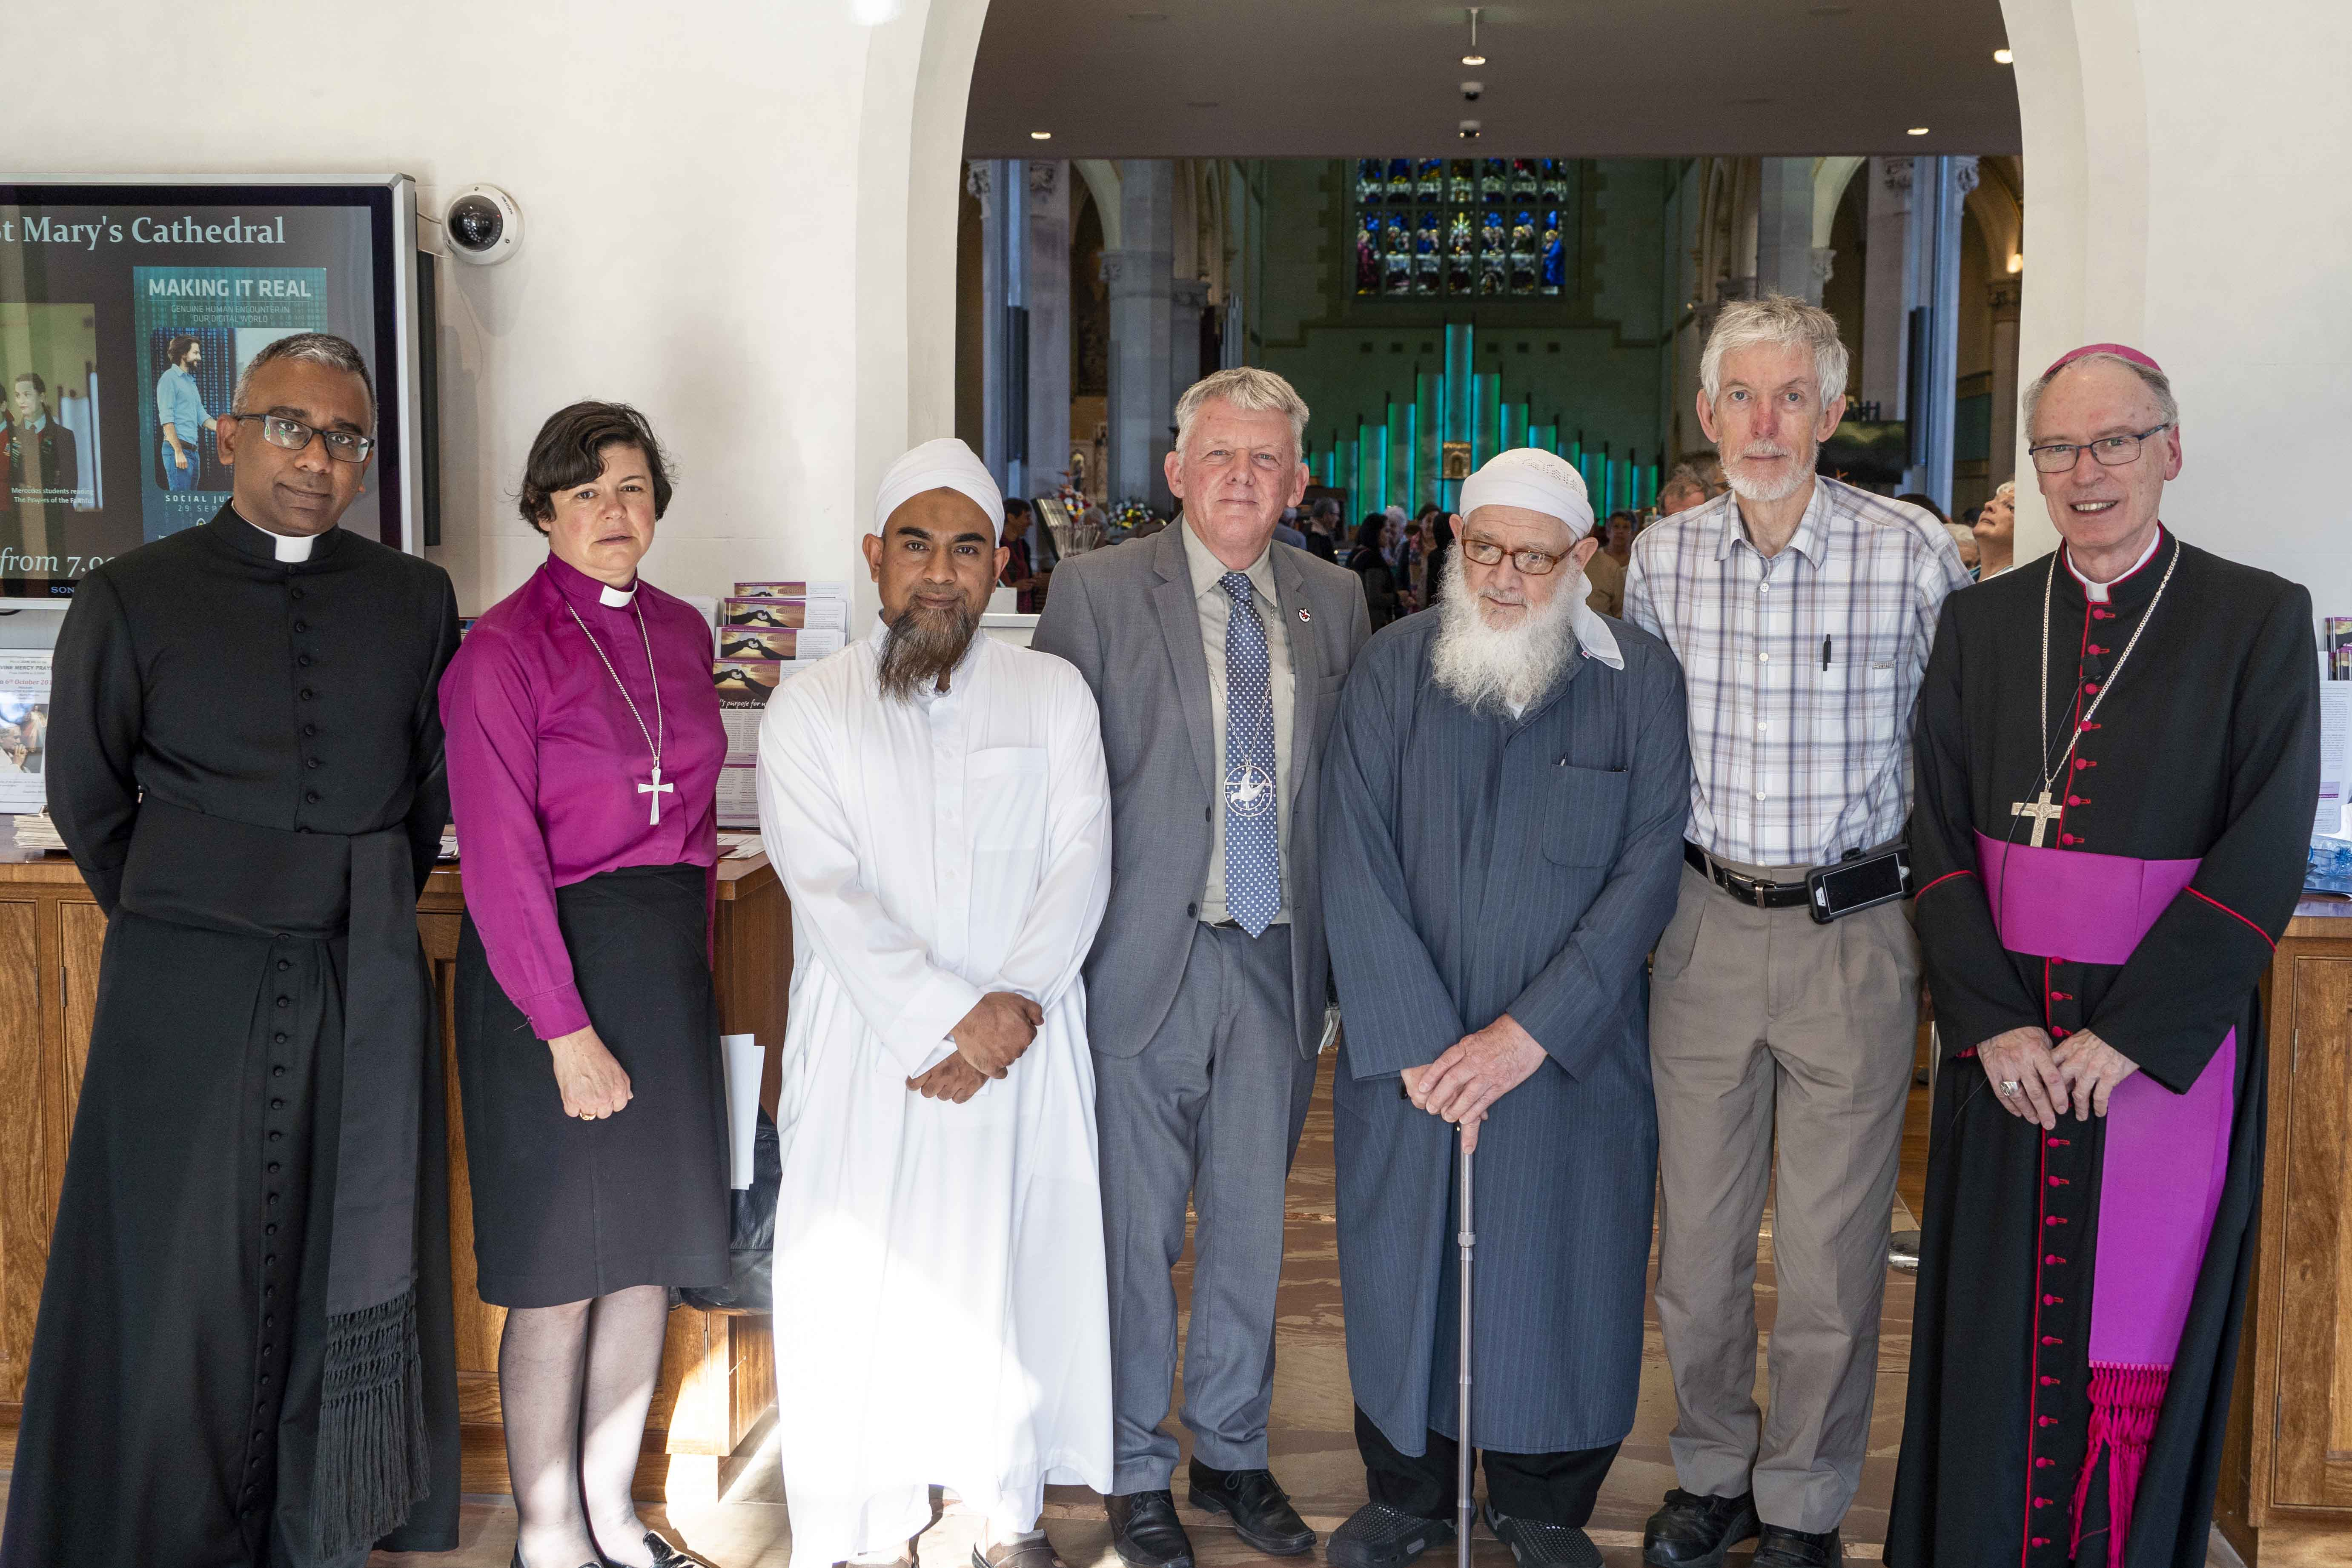 St Mary's Cathedral Dean Rev Dr Sean Fernandez, Anglican Bishop Kate Wilmott, Perth Mosque Iman Mohammed Shakeeb, Uniting Church Moderator Rev Steve Francis, Dr Doug Bridge and Perth Catholic Auxiliary Bishop Don Sproxton came together in the spirit of prayer and dialogue on Sunday 29 September. Photo: Josh Low.